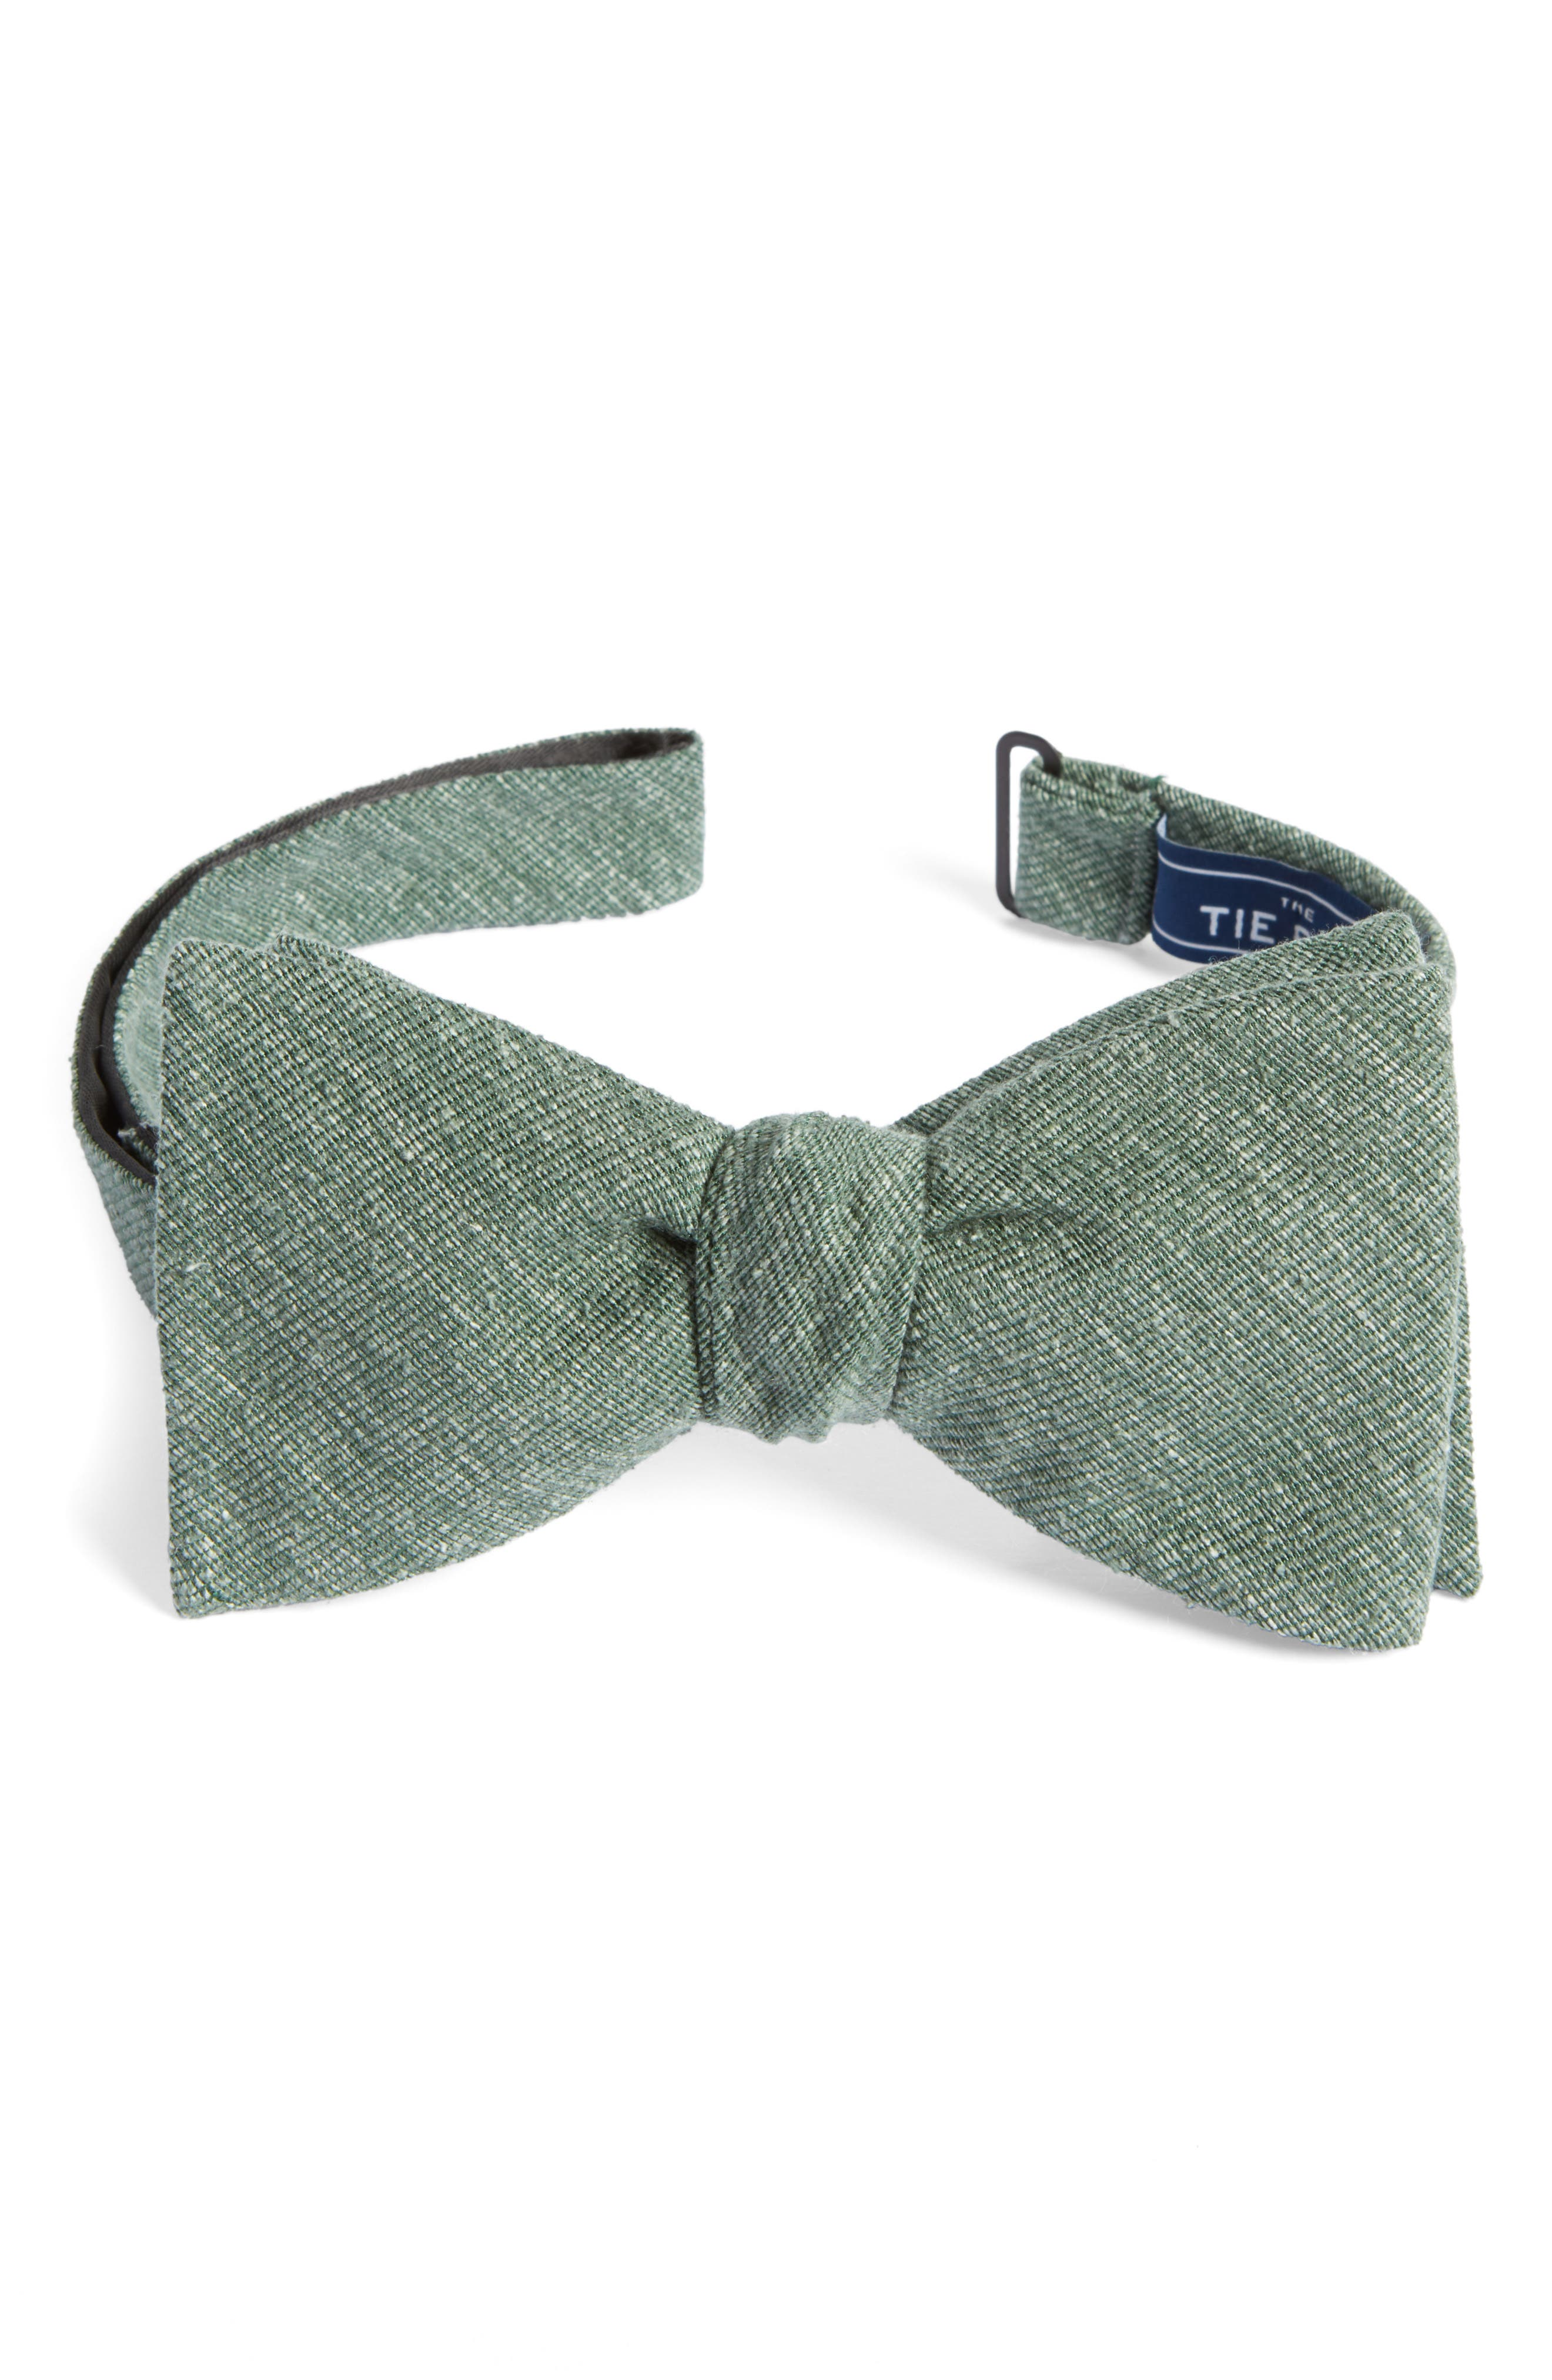 Alternate Image 1 Selected - The Tie Bar West Ridge Silk Bow Tie